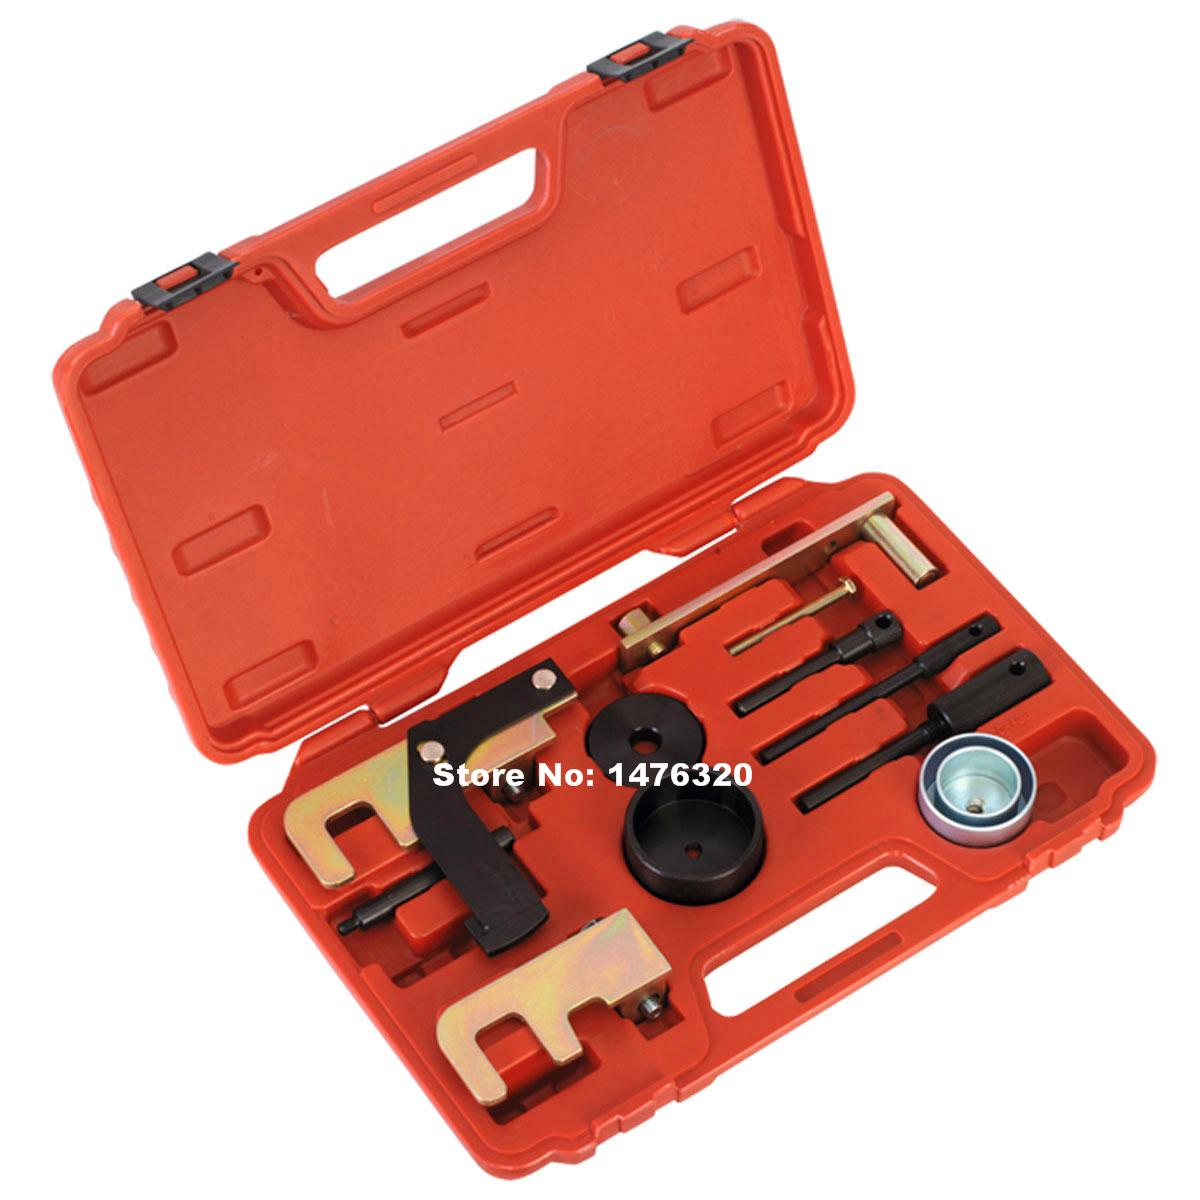 Automotive Diesel Engine Timing Locking Setting Tool Set For Renault Nissan DCi & Vauxhall Opel 1.5 1.9 2.2 2.5 AT2066